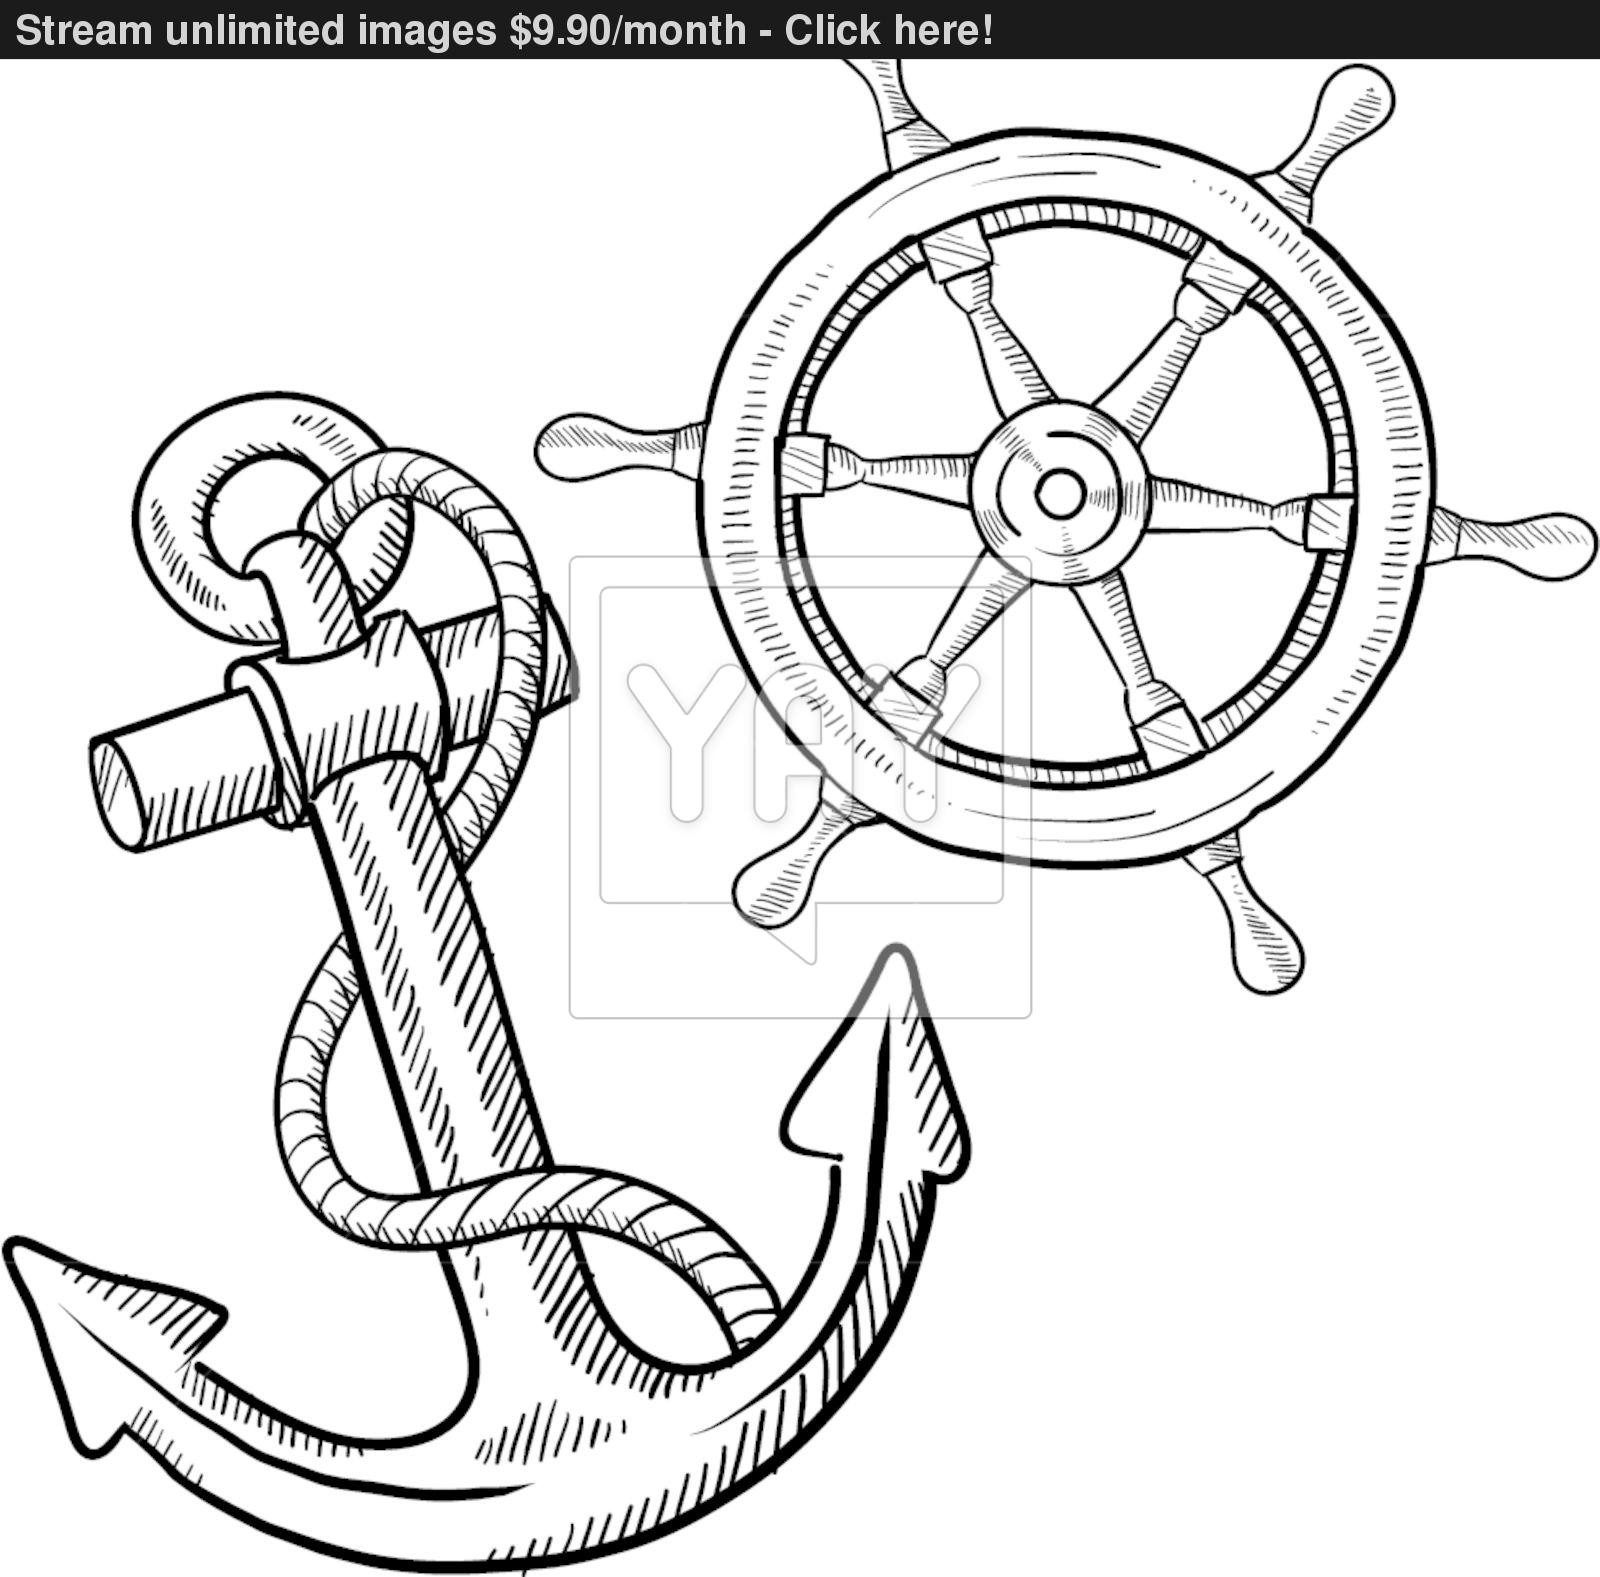 graphic regarding Anchor Printable titled Absolutely free Printable Anchor Coloring Webpages at